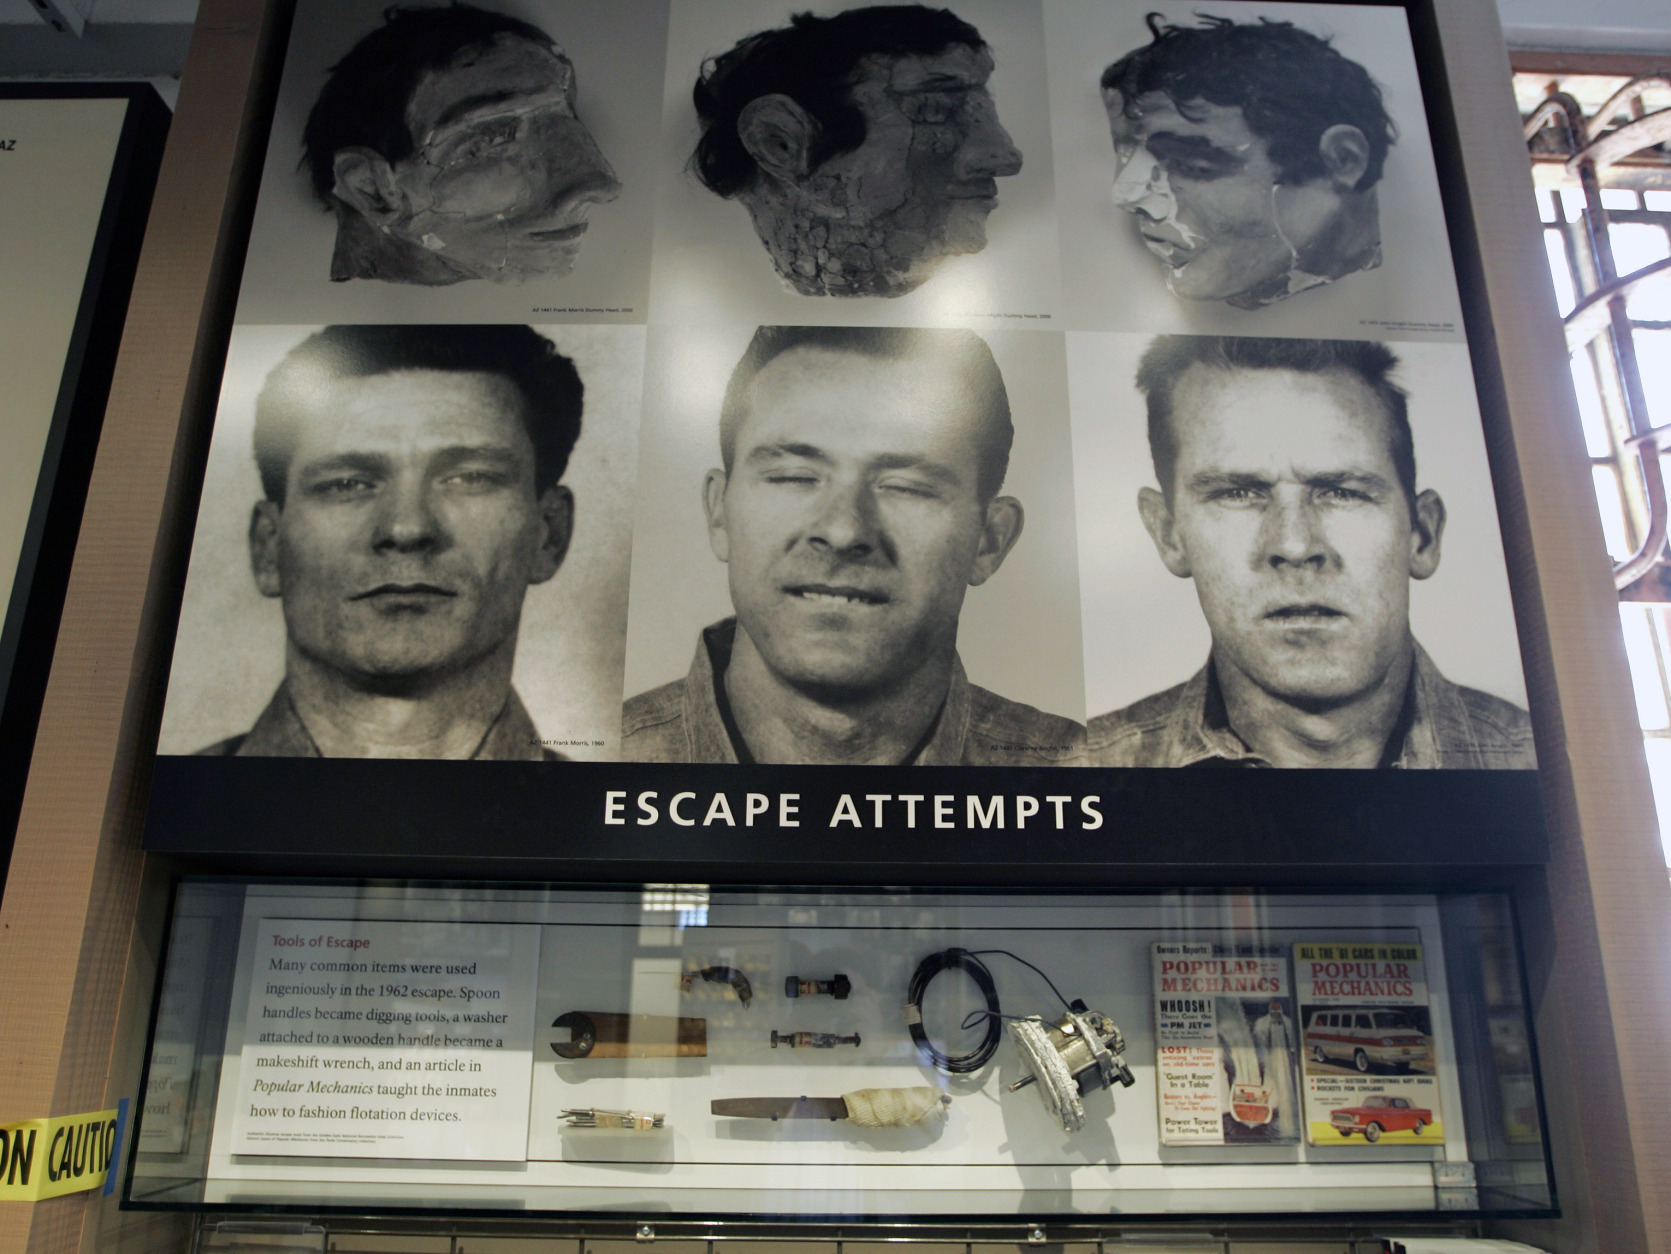 "FILE - In this April 24, 2007, file photo, an exhibit about a 1962 prison escape made famous in the movie, ""Escape from Alcatraz,"" is displayed in the museum store on Alcatraz Island in San Francisco. Scientists say the three prisoners who escaped from Alcatraz in one of the most famous and elaborate prison breaks in U.S. history could have survived and made it to land. Using software to study currents the night of the 1962 escape, three Dutch scientists concluded the three men could have made it to land north of the Golden Gate Bridge if they left between 11:30 p.m. and midnight.  Prison officials and federal agents insisted at the time that the inmates perished, but their bodies were never found.(AP Photo/Eric Risberg, File)"